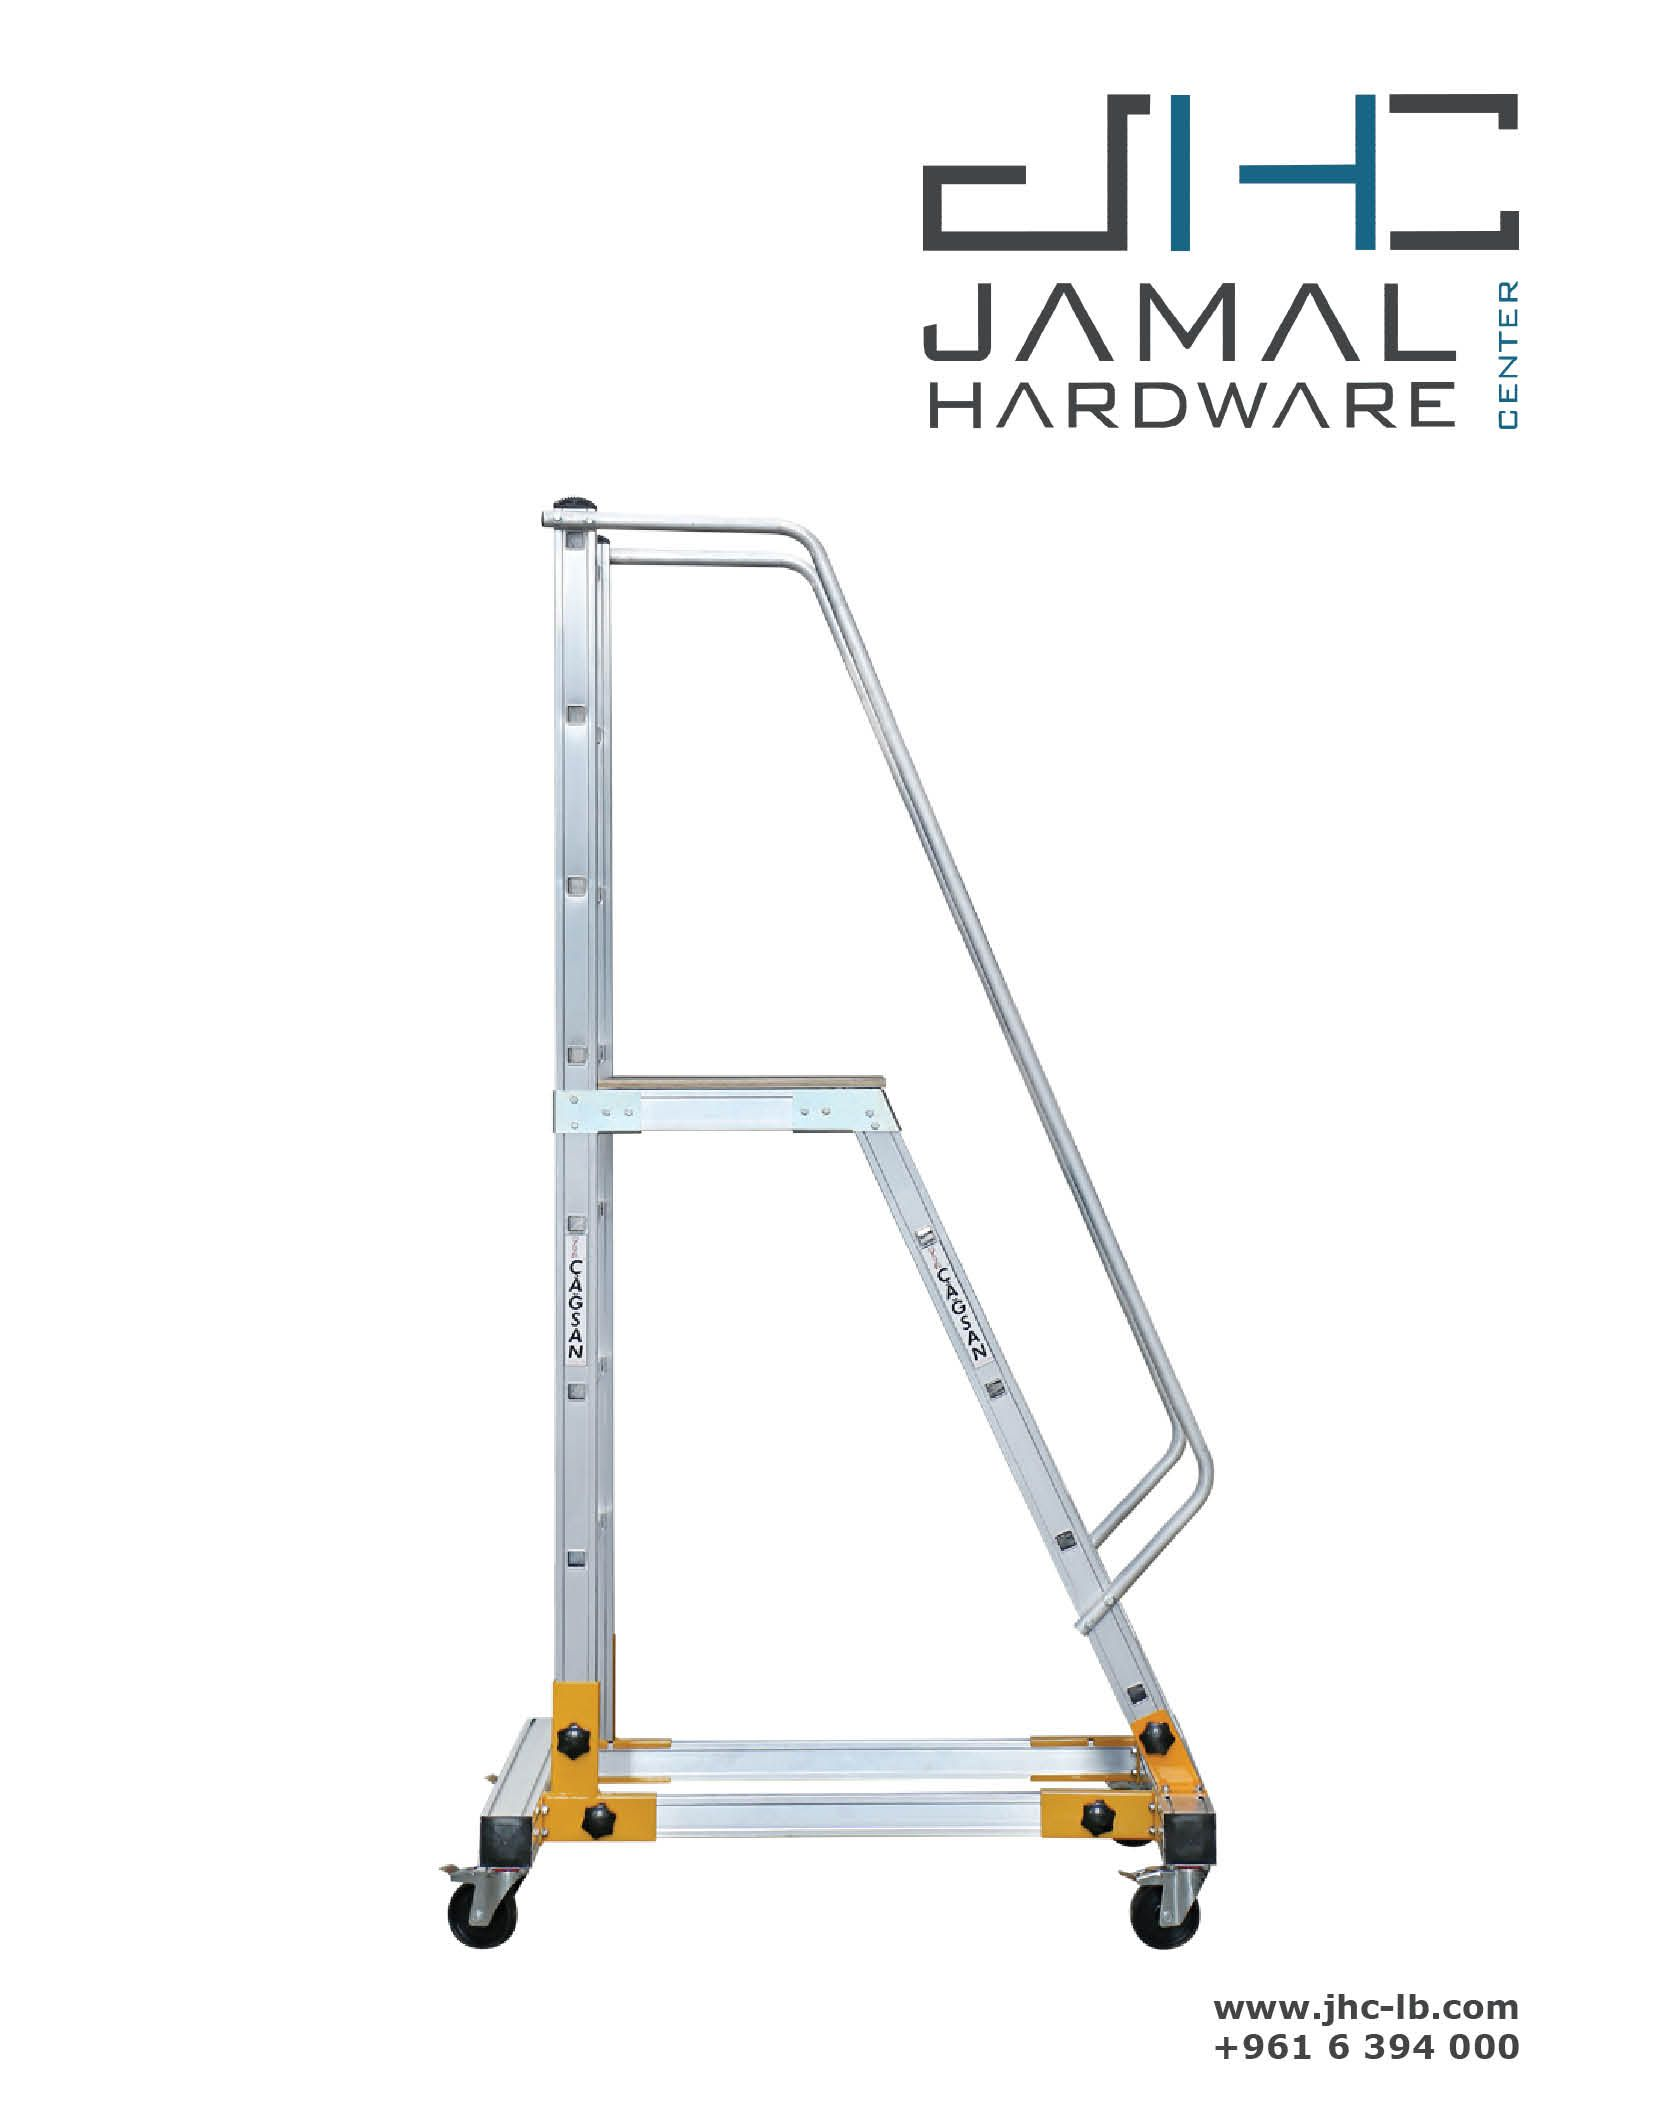 Pin by jamal hardware center on shelf ladders and stock area